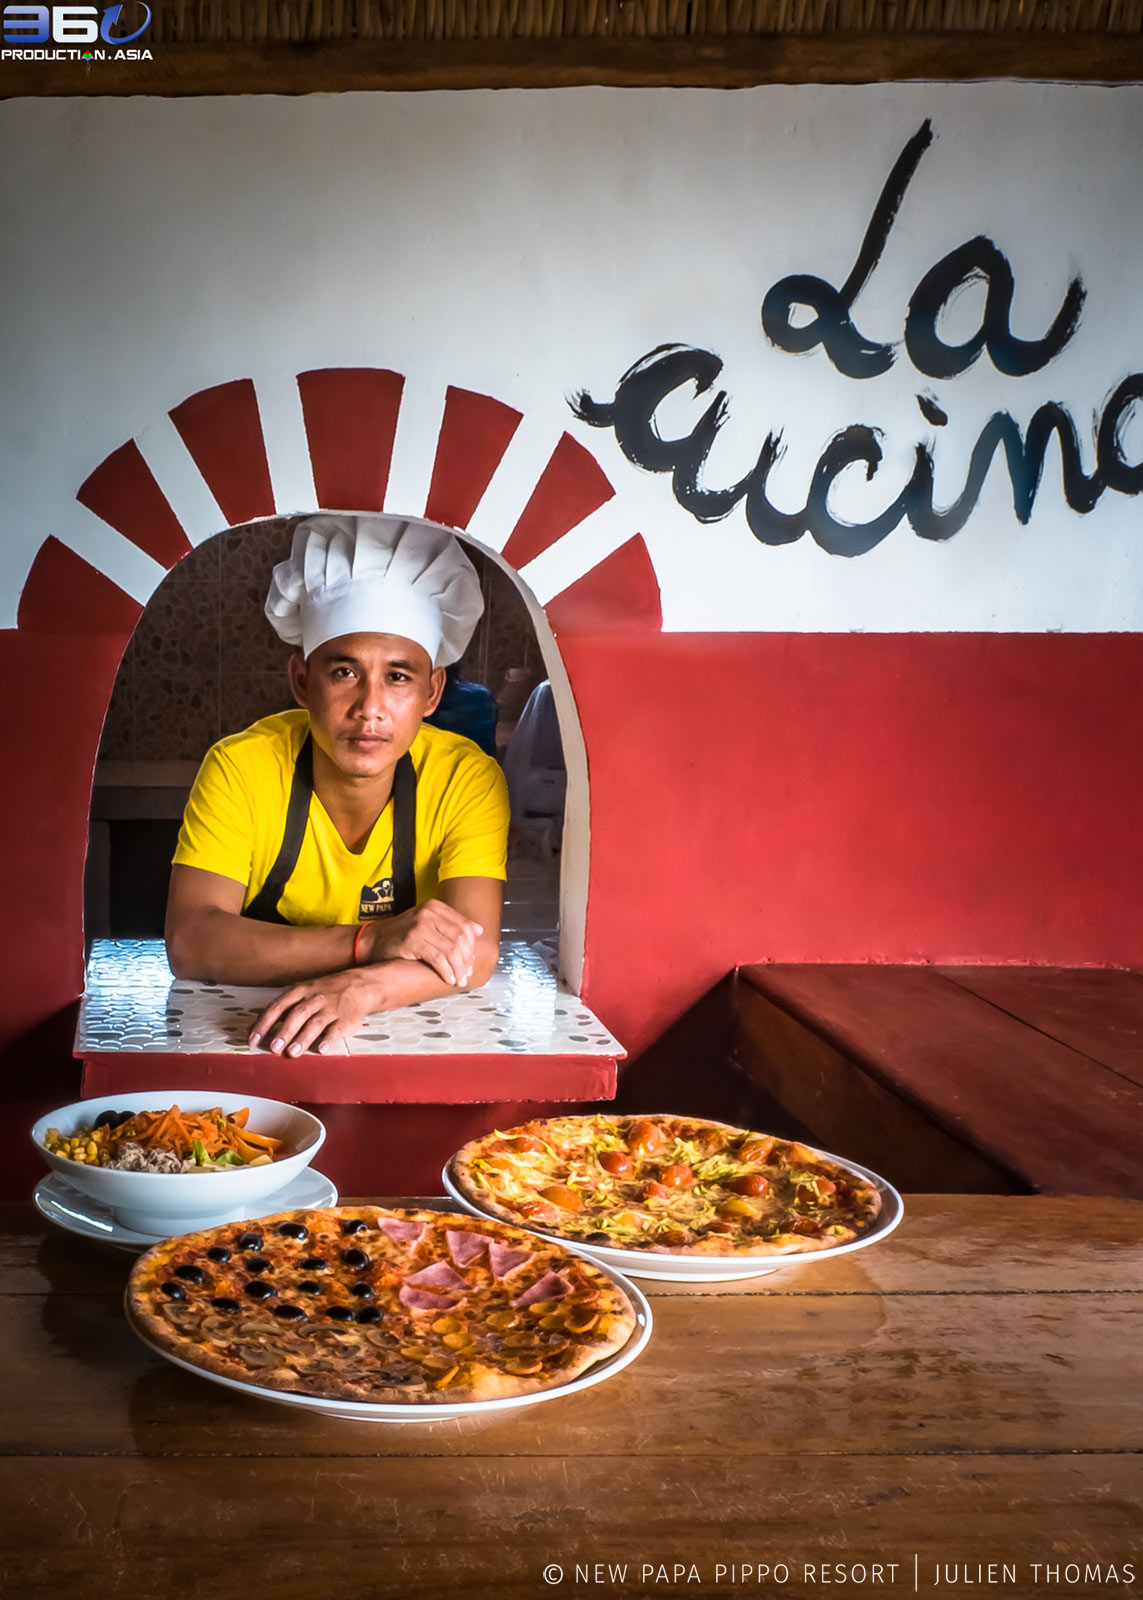 The Chef and hand made pizzas.